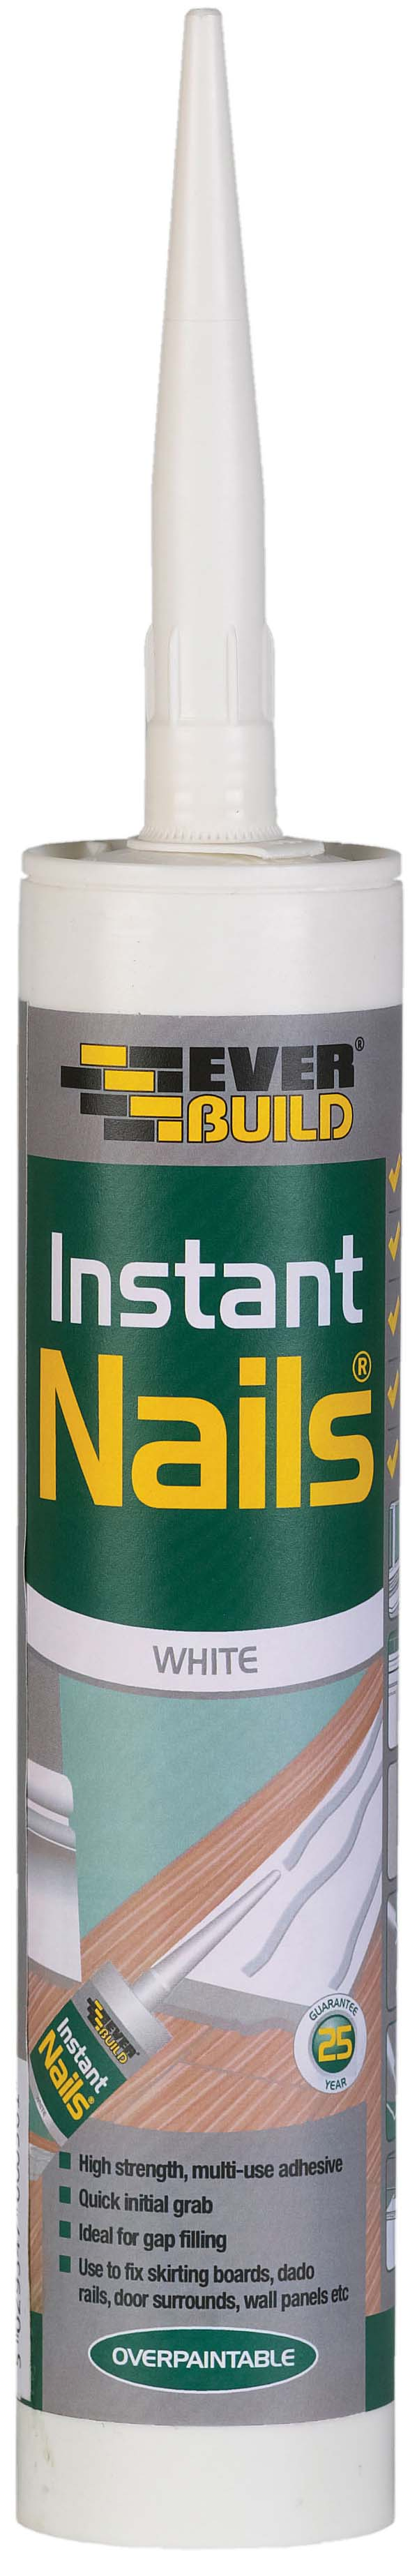 EVER BUILD INSTANT NAILS ADHESIVE 310ML